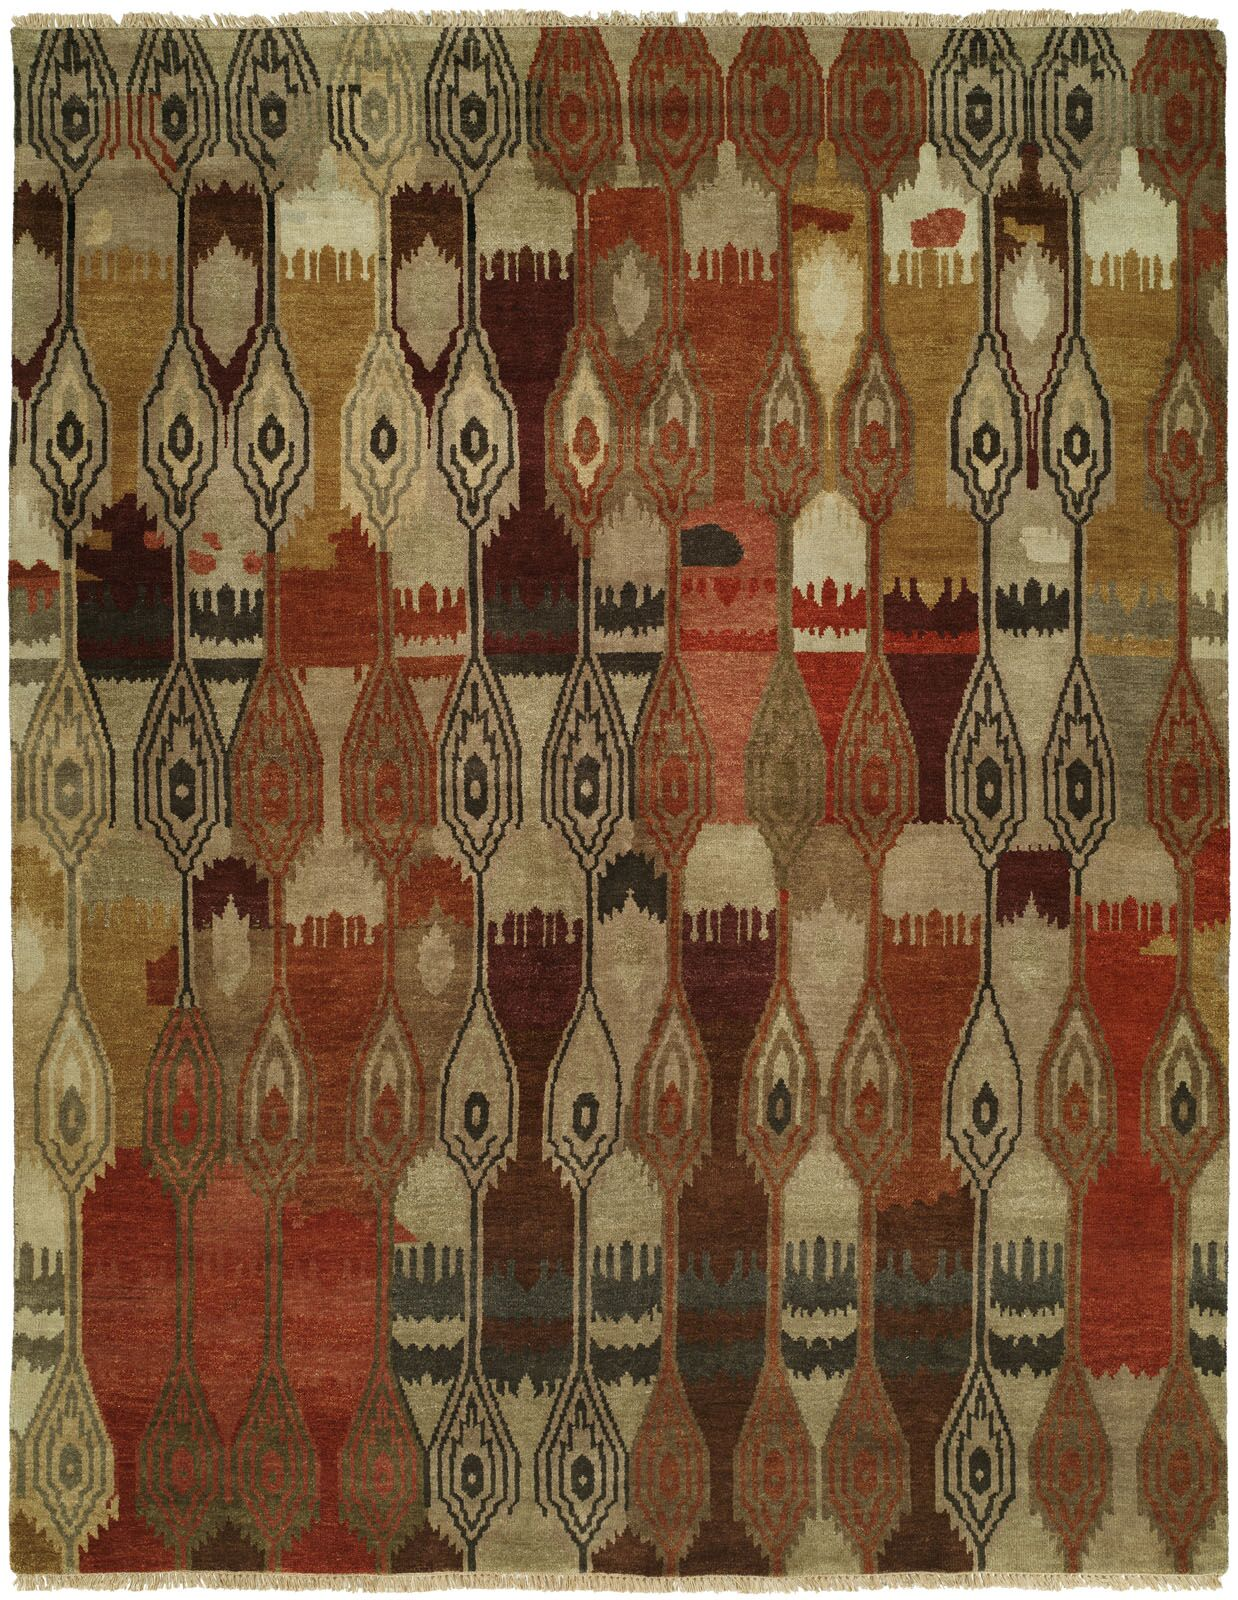 Weinstock Hand Knotted Wool Beige/Brown Area Rug Rug Size: Rectangle 2' x 3'